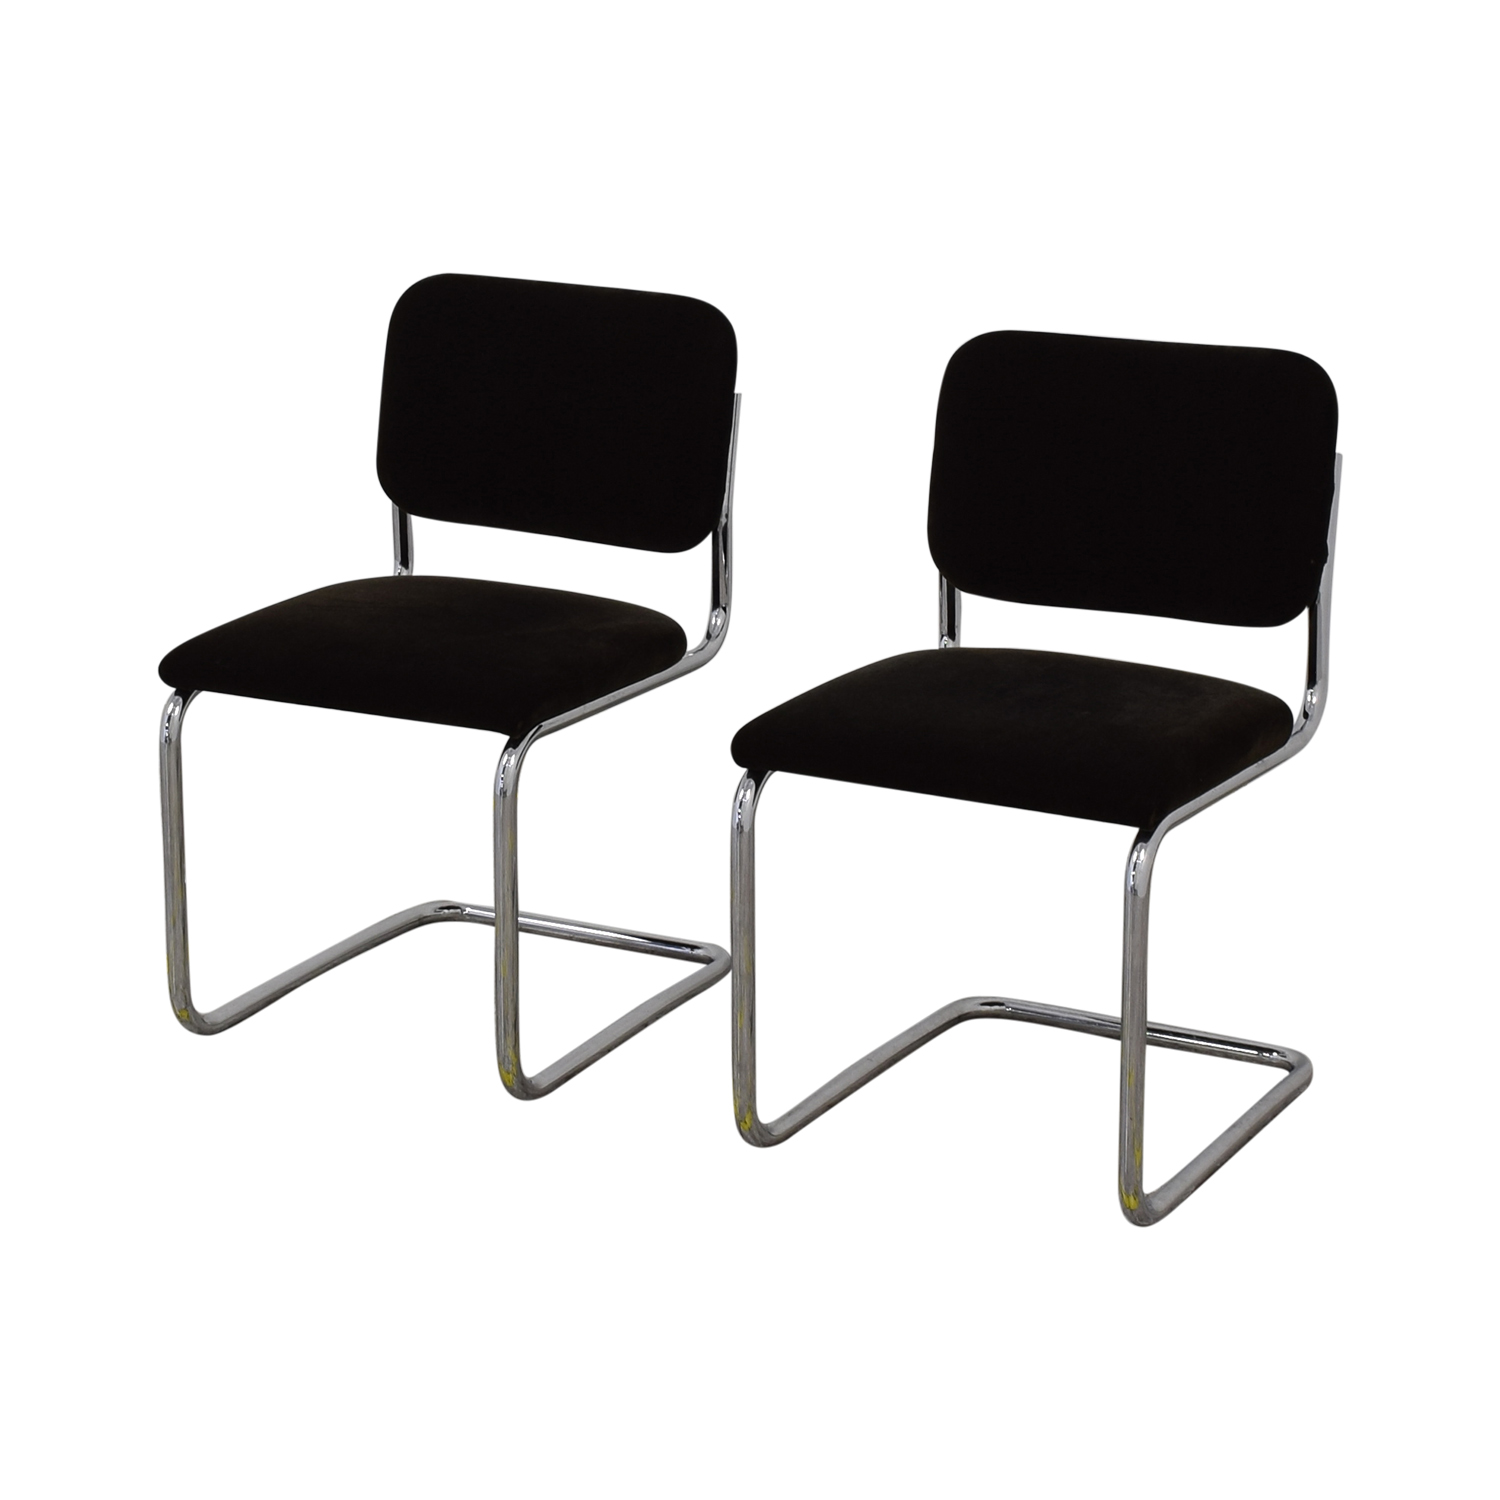 buy Knoll Marcel Breuer Cesca Chairs Knoll Chairs